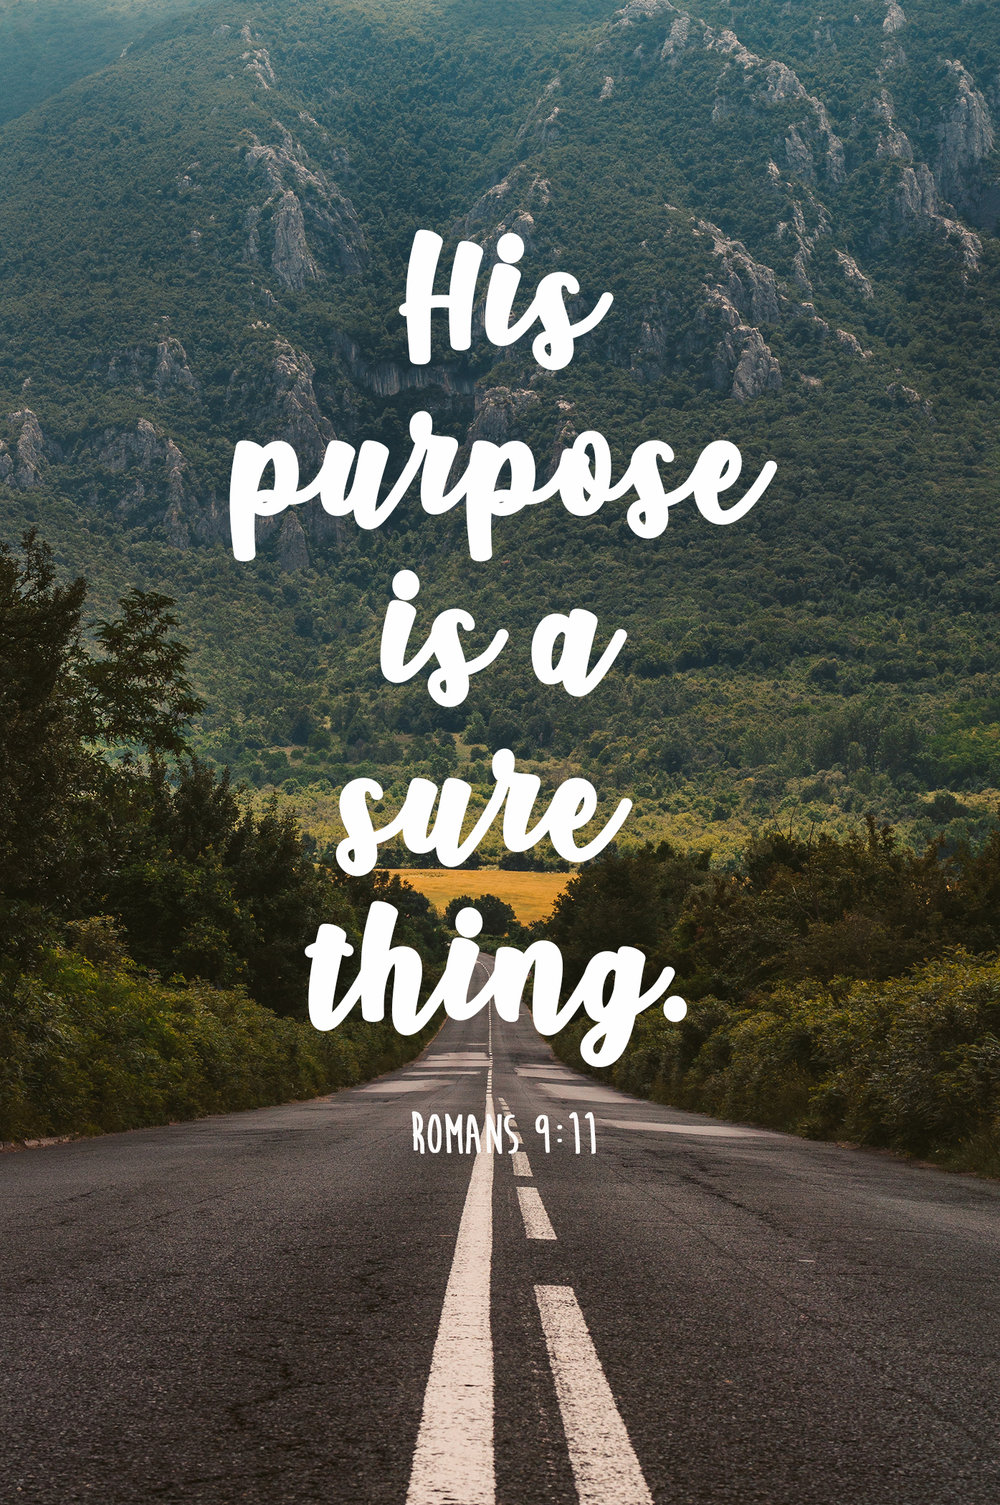 his-purpose-is-a-sure-thing-romans-9-11.jpg